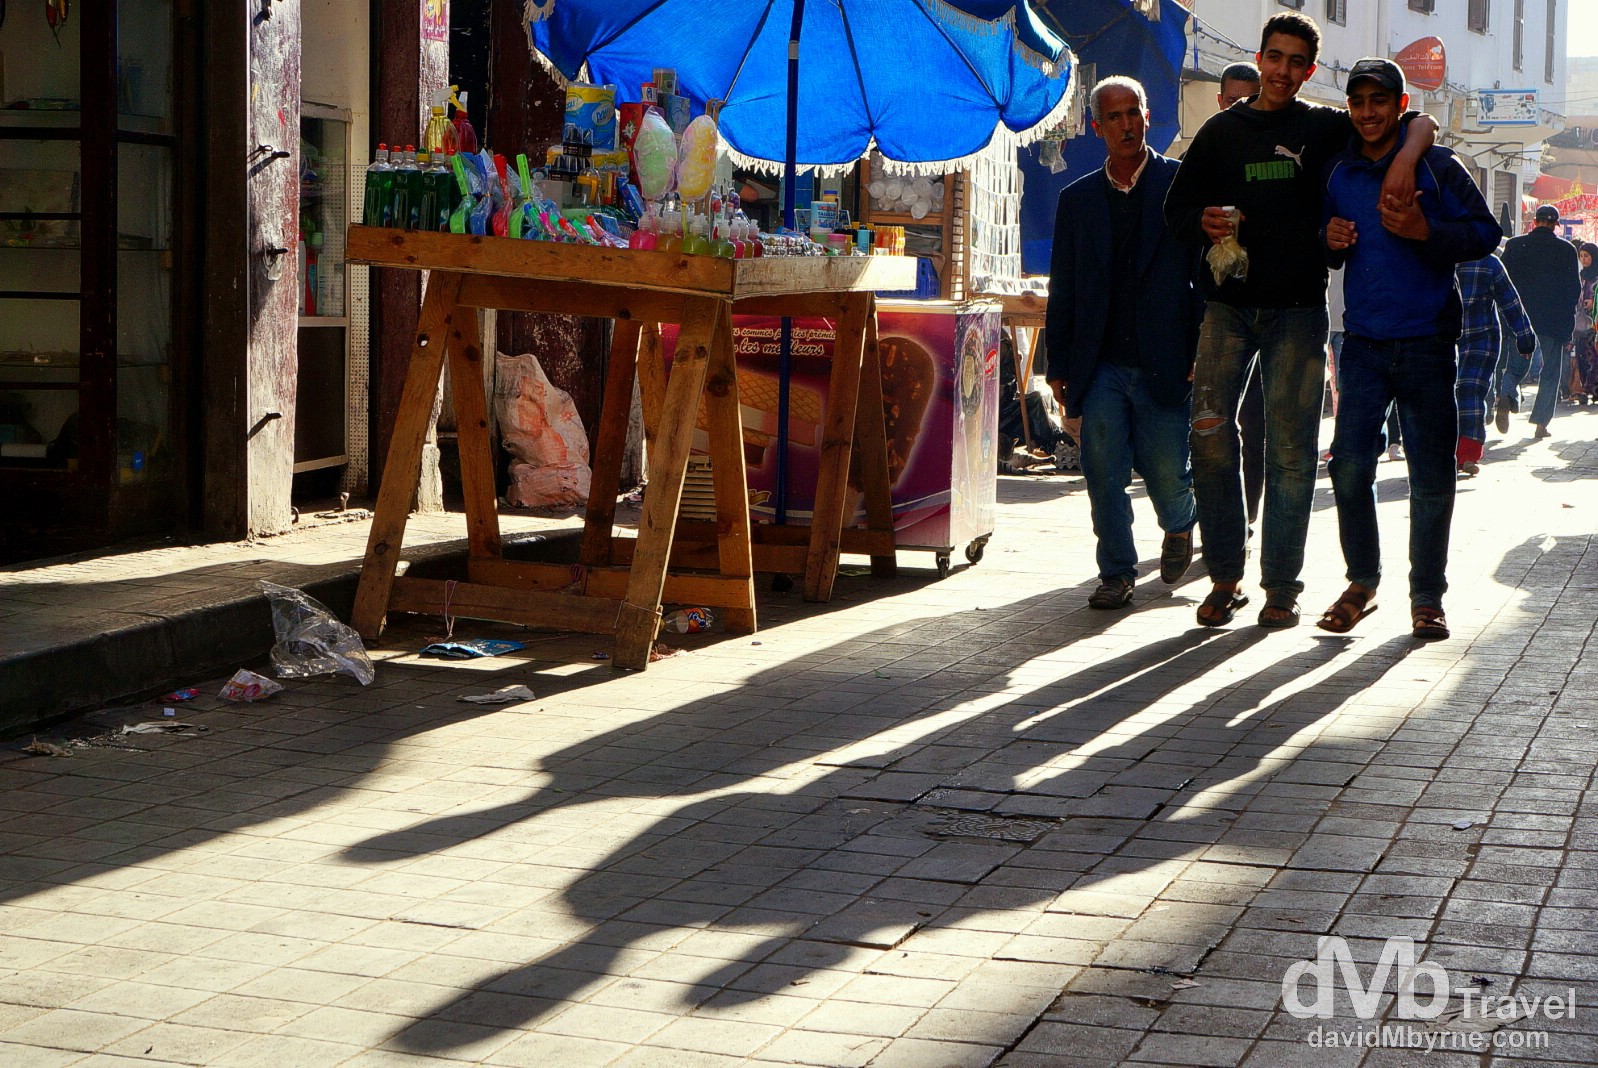 Shadows & bromance in the lanes of the Ancienne Medina in Casablanca, Morocco. April 28th, 2014.